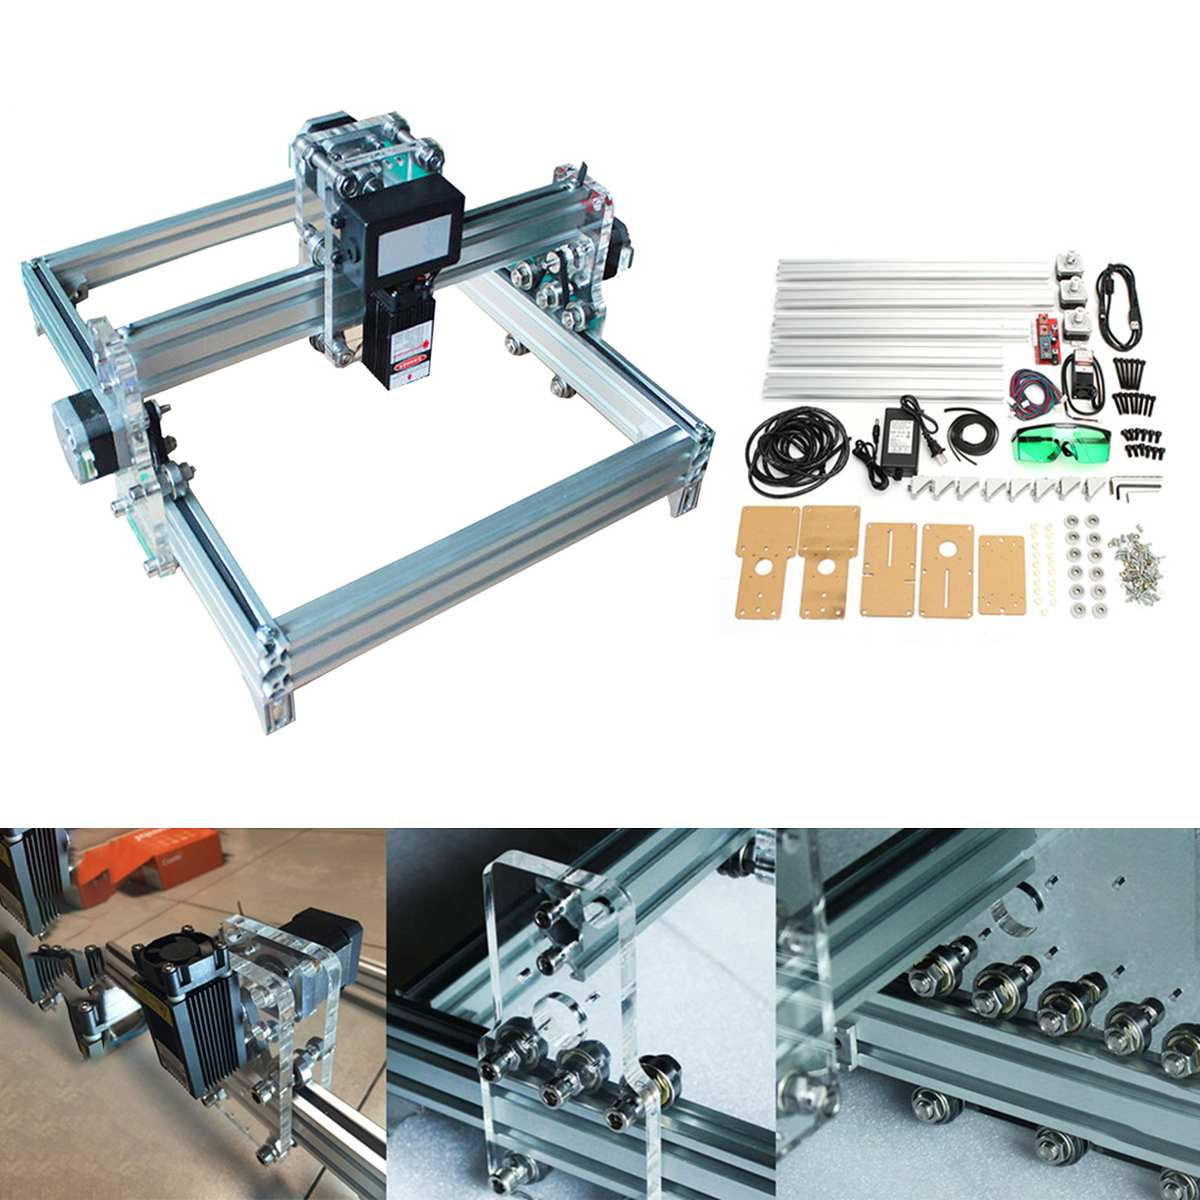 New 32x23cm 500mW DIY Desktop Mini CNC Carving Laser Engraving Engraver Machine DC 12V Wood Cutter/Printer Kit + Laser Goggles